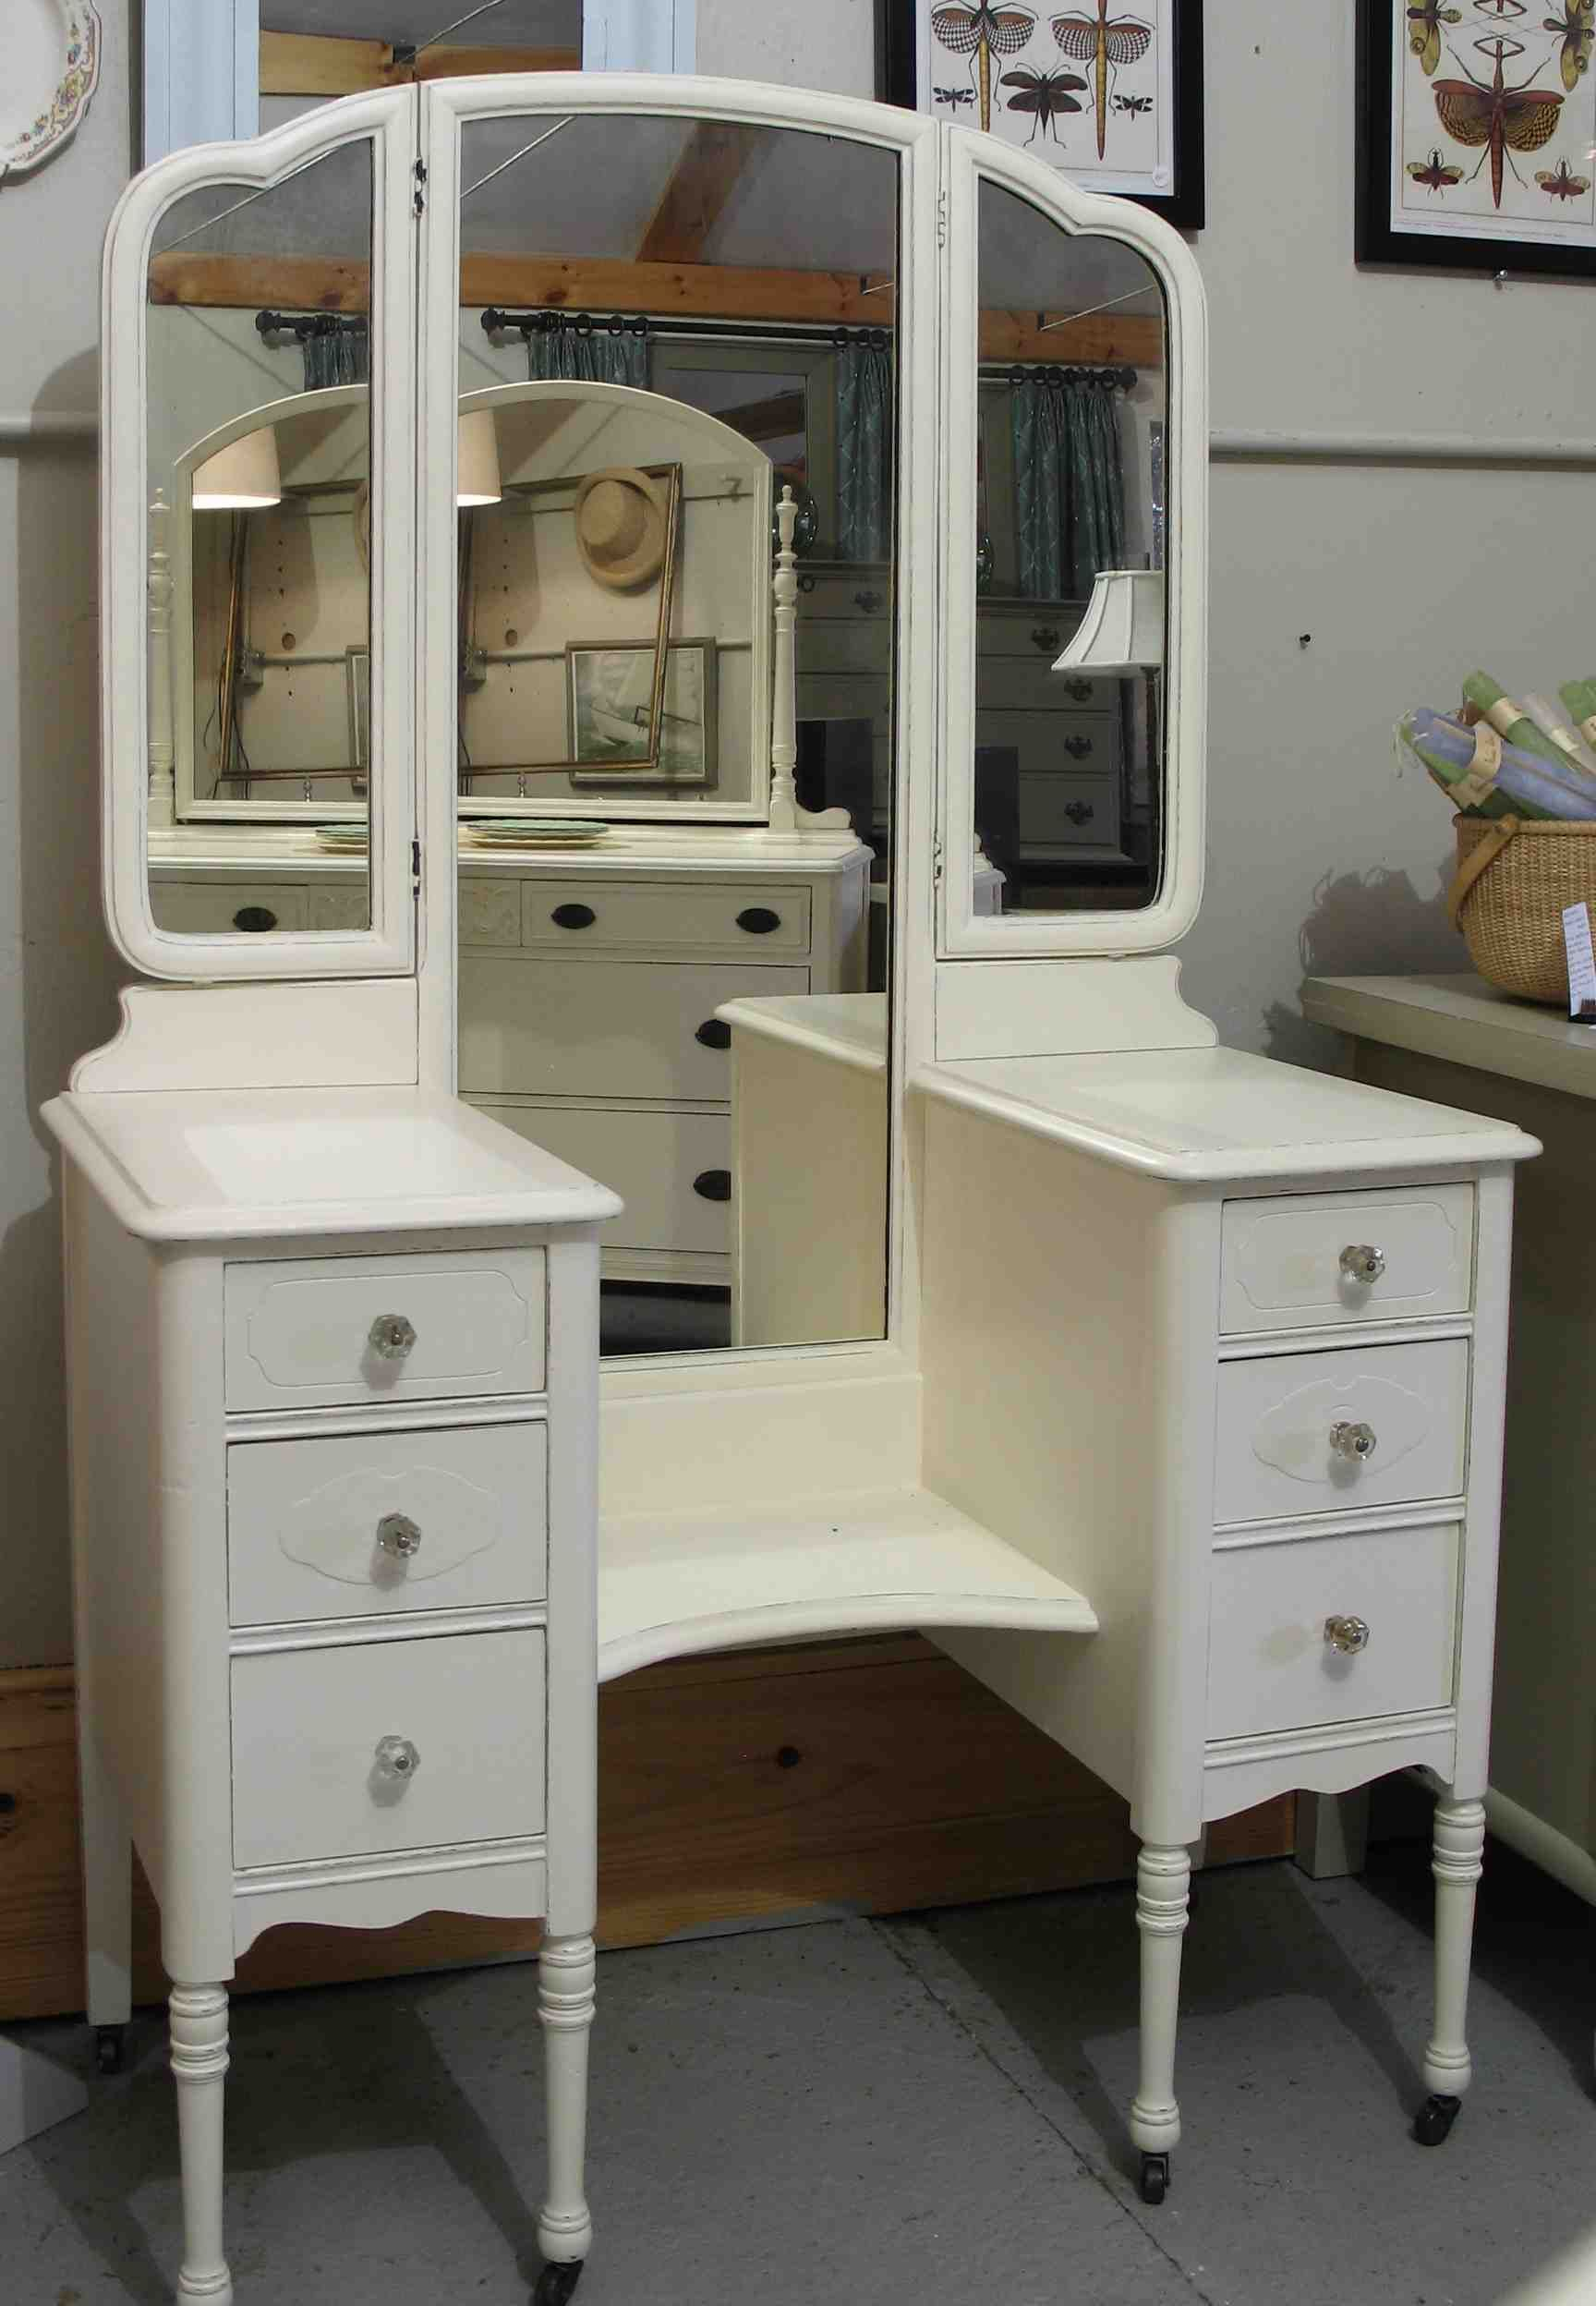 Furniture Old And Vintage Wooden Makeup Vanity Table With 3 Fold